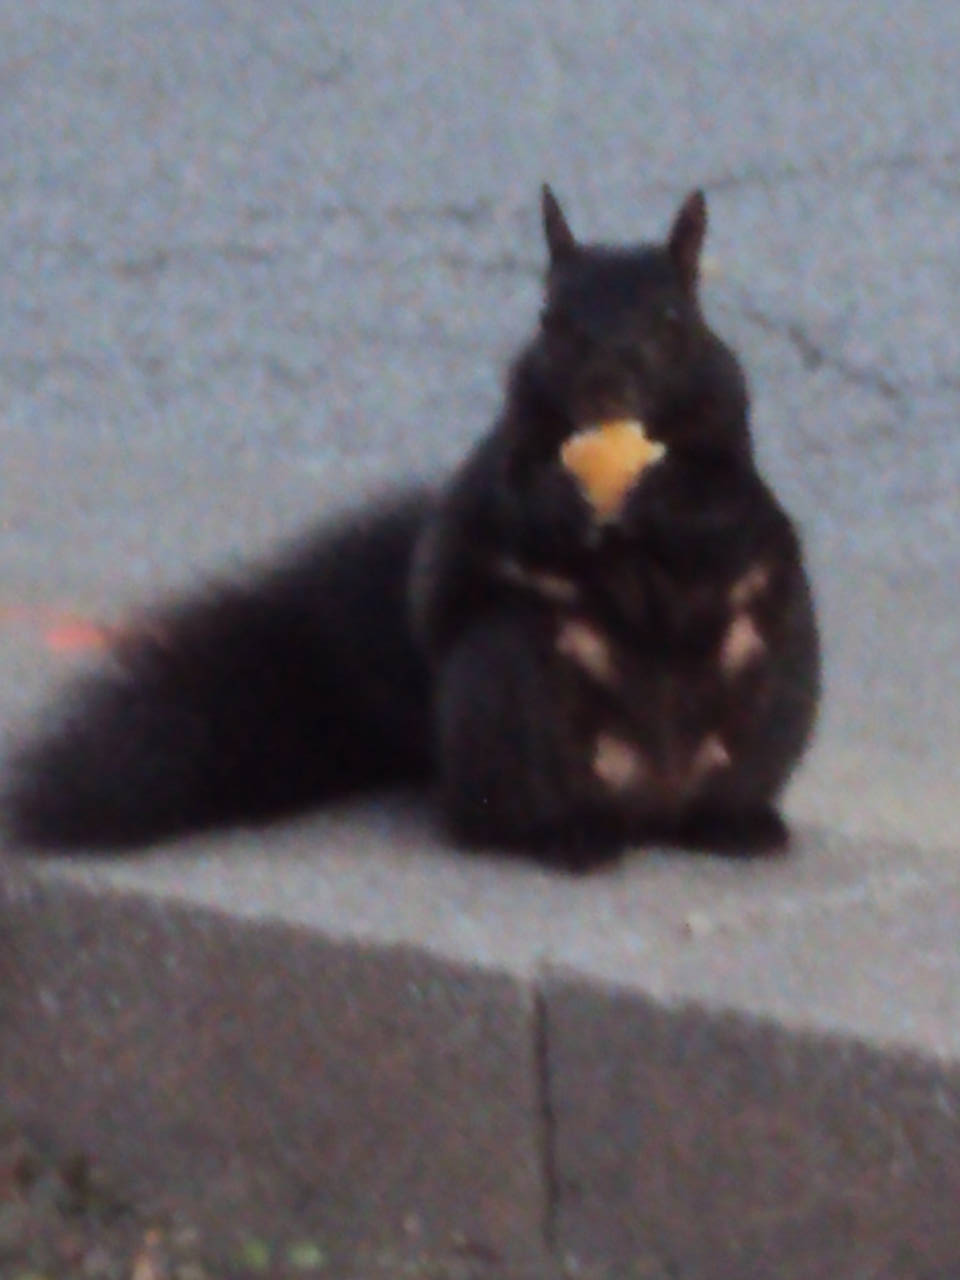 LOL. It's a Squirrel eating a piece of cheese